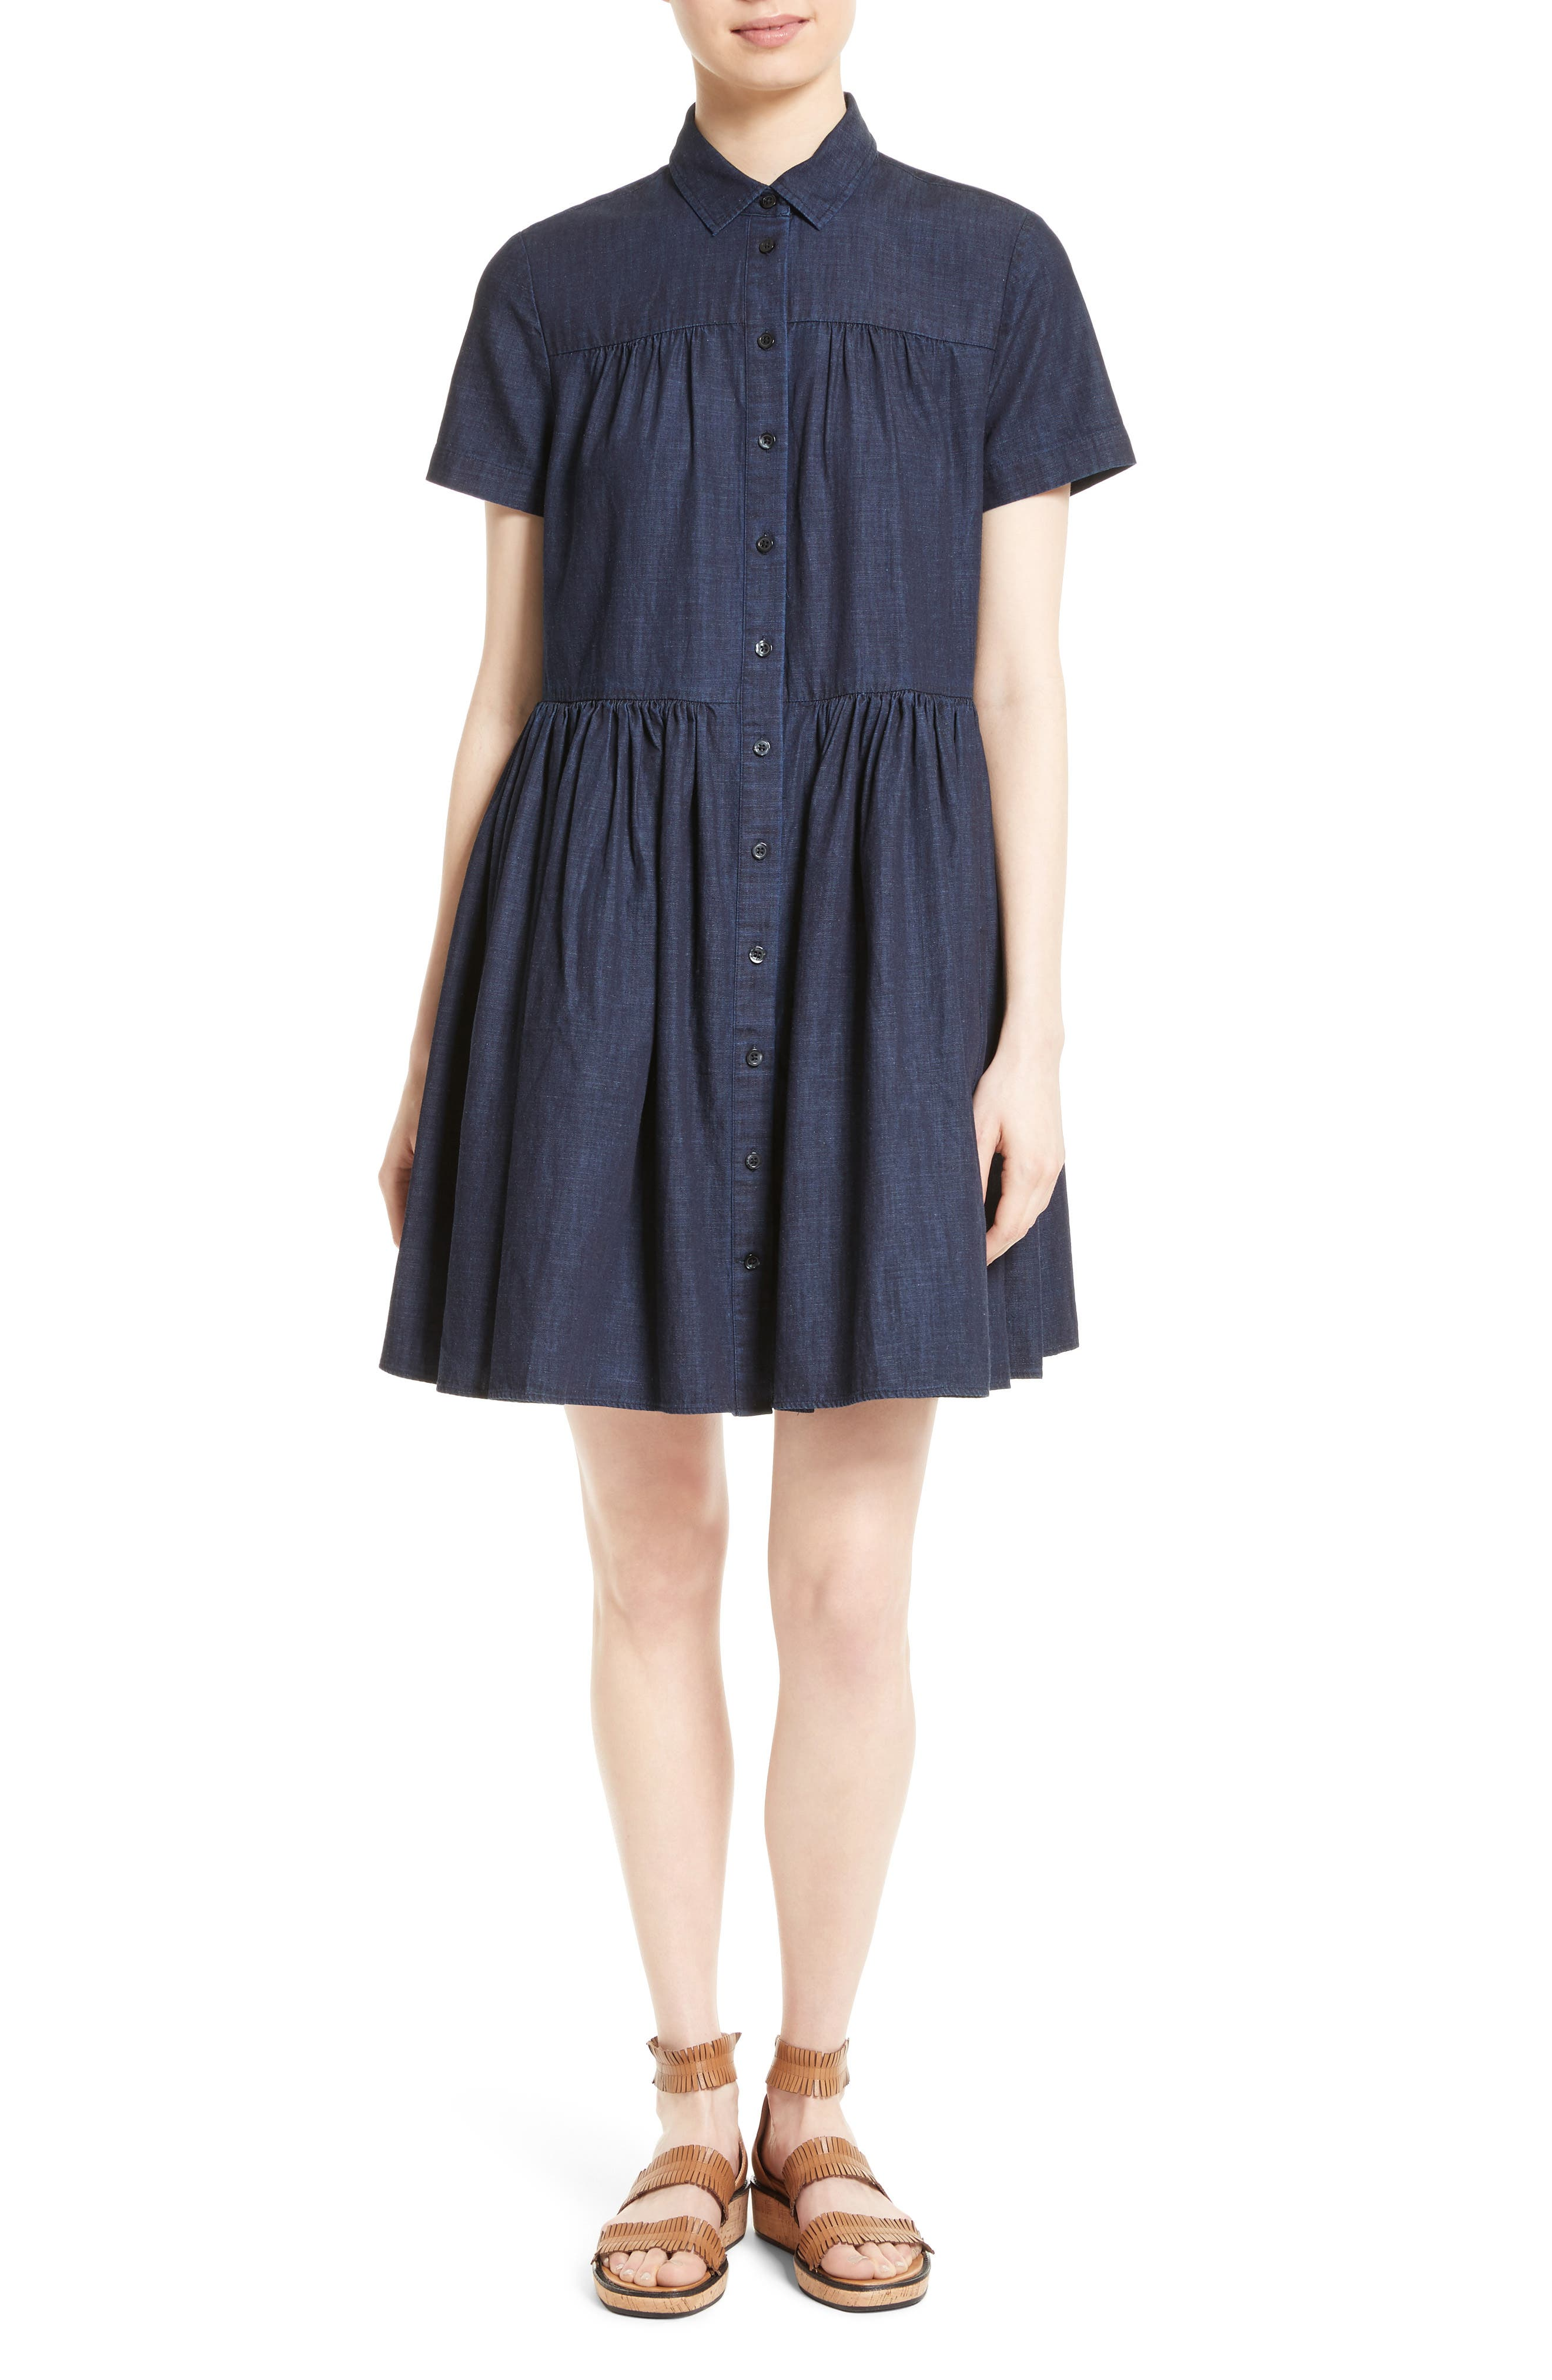 Alternate Image 1 Selected - kate spade new york chambray swing shirtdress